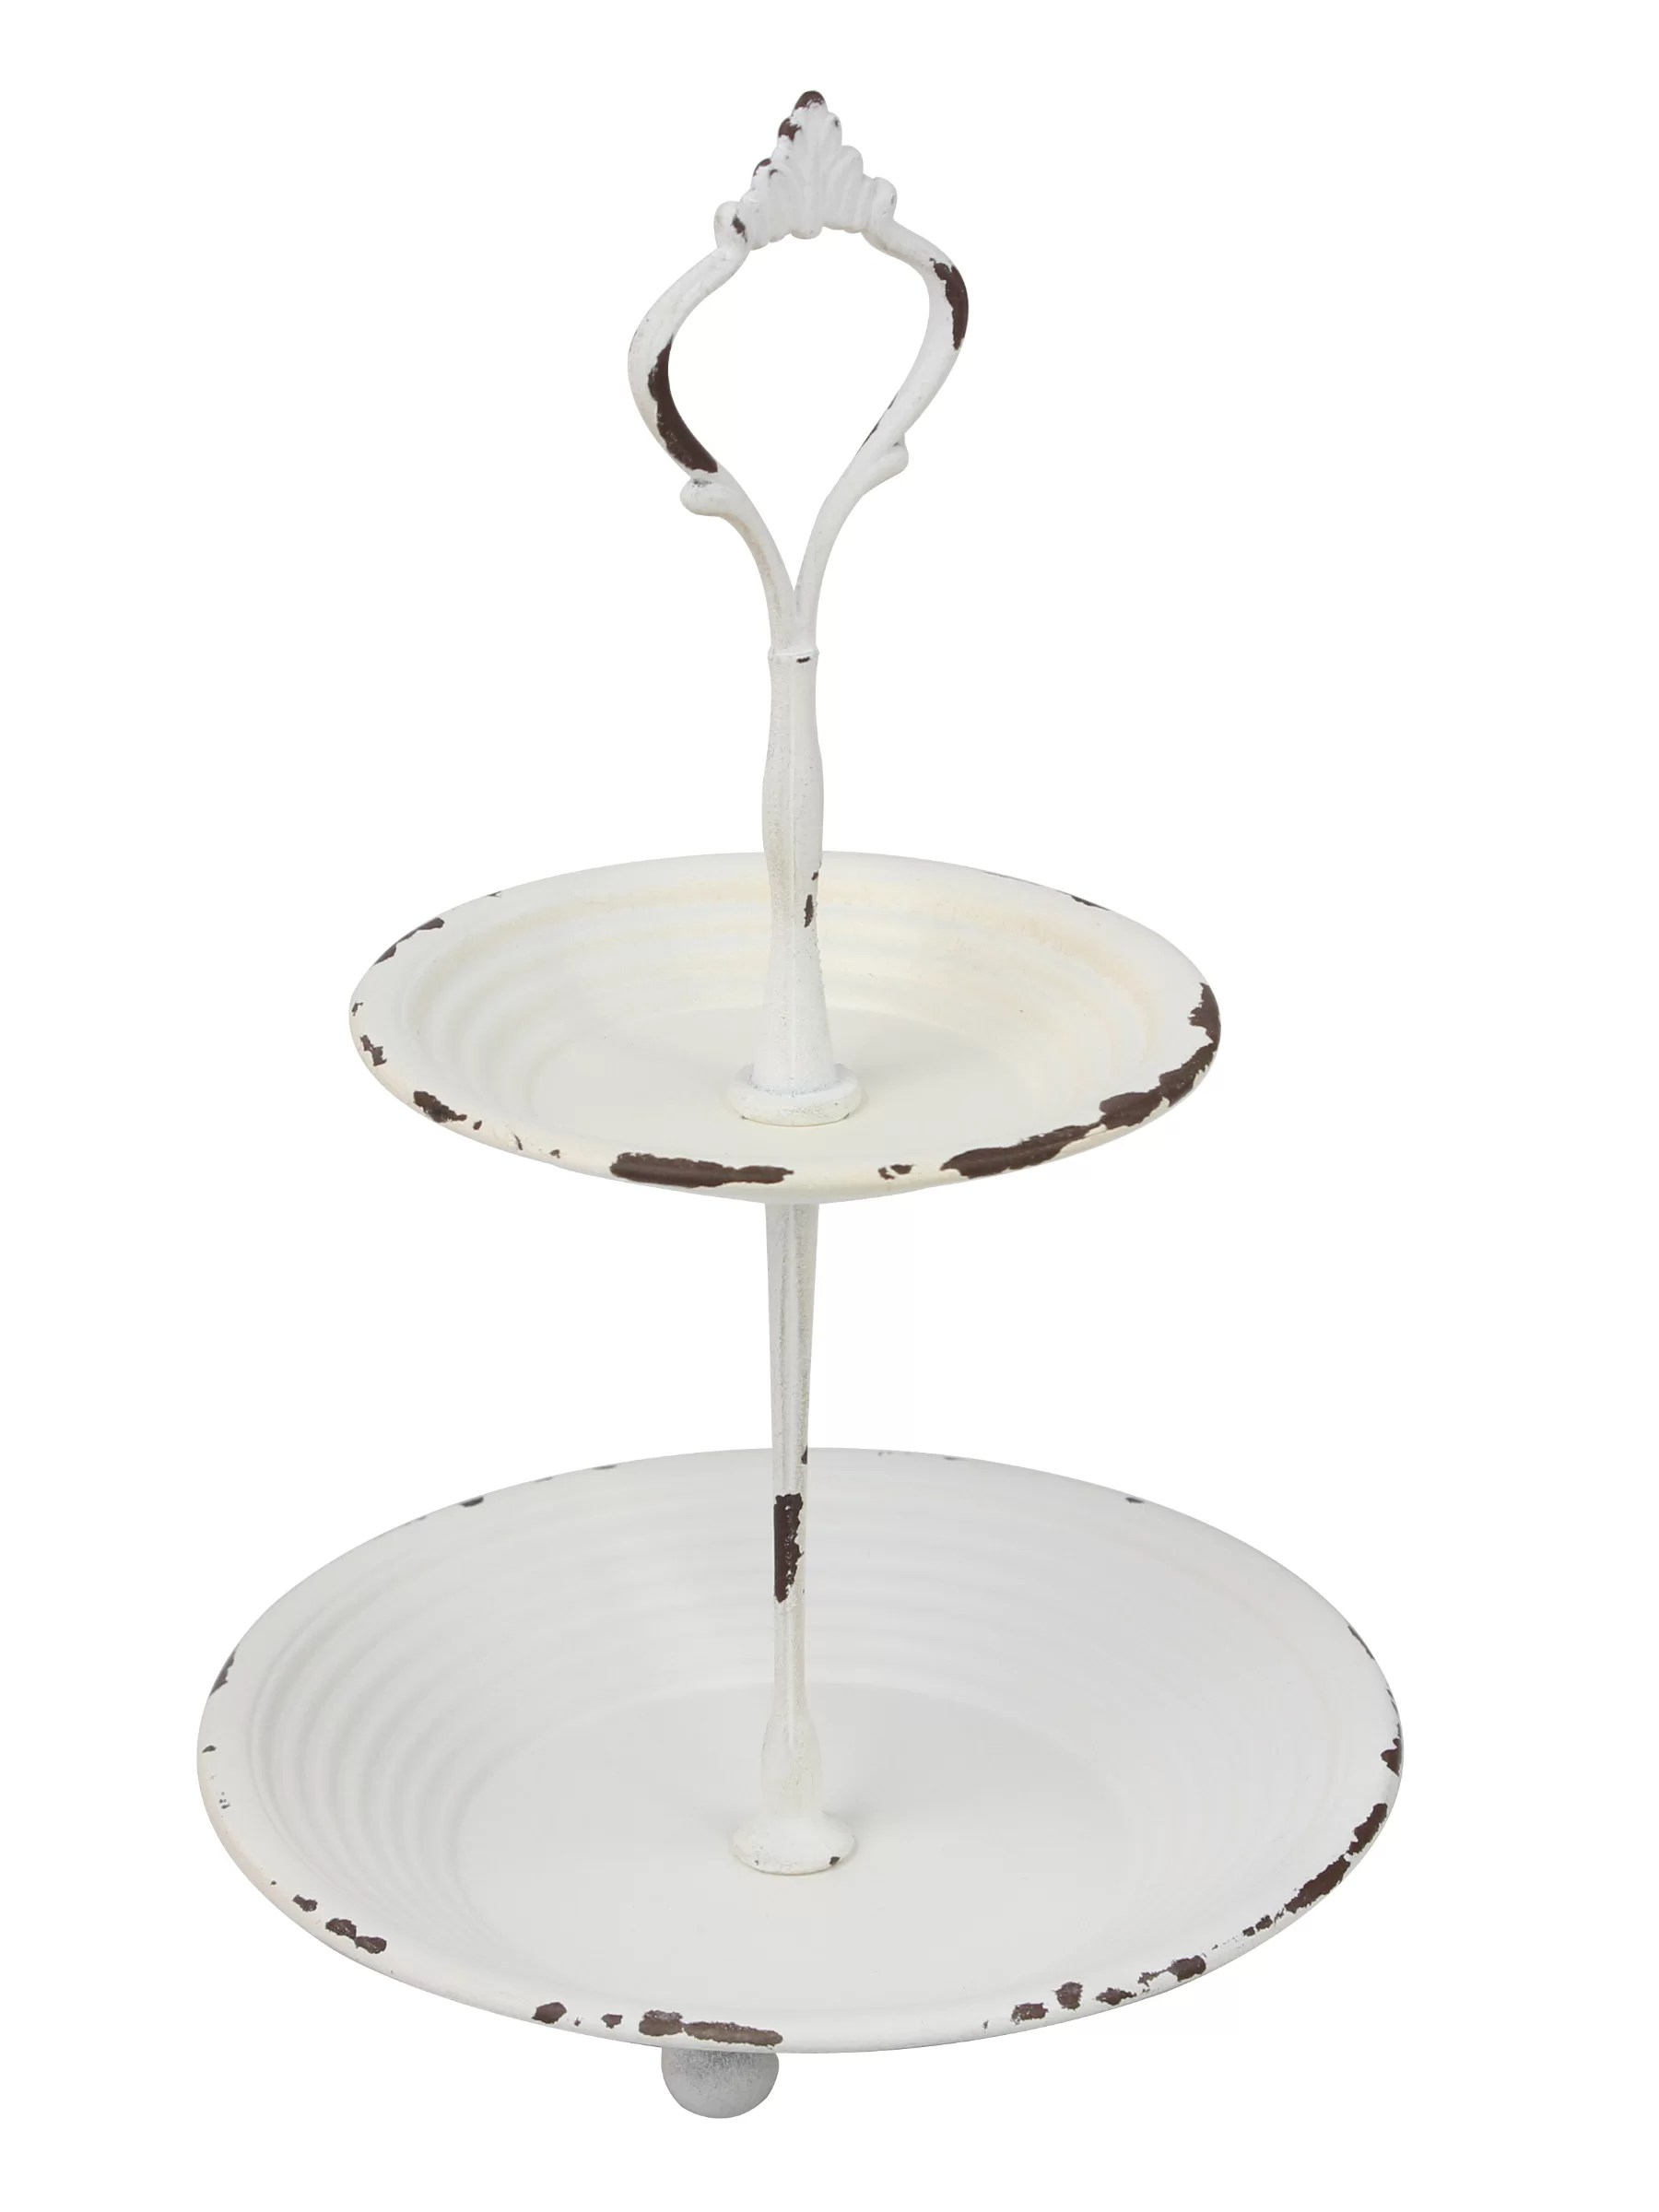 Ophelia Co Merida Small 2 Tier Worn White Metal Tray Rustic Farmhouse Decor Tiered Jewellery Tray For Vanity Or Bathroom Reviews Wayfair Ca